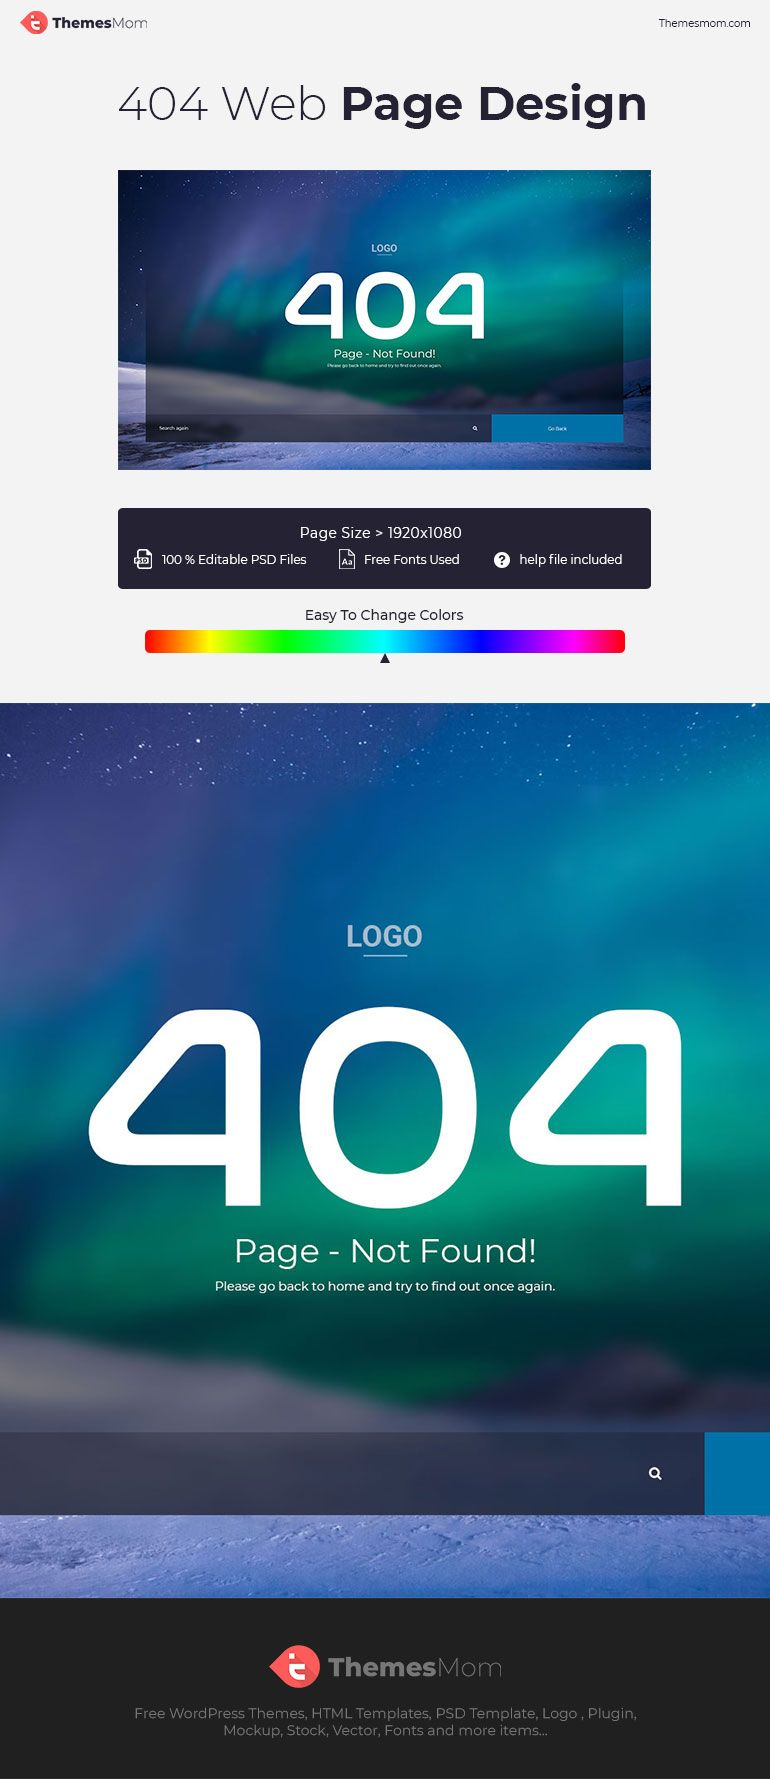 404 Page Not Found Psd Template Themesmom Psd Templates Templates Free Graphic Design